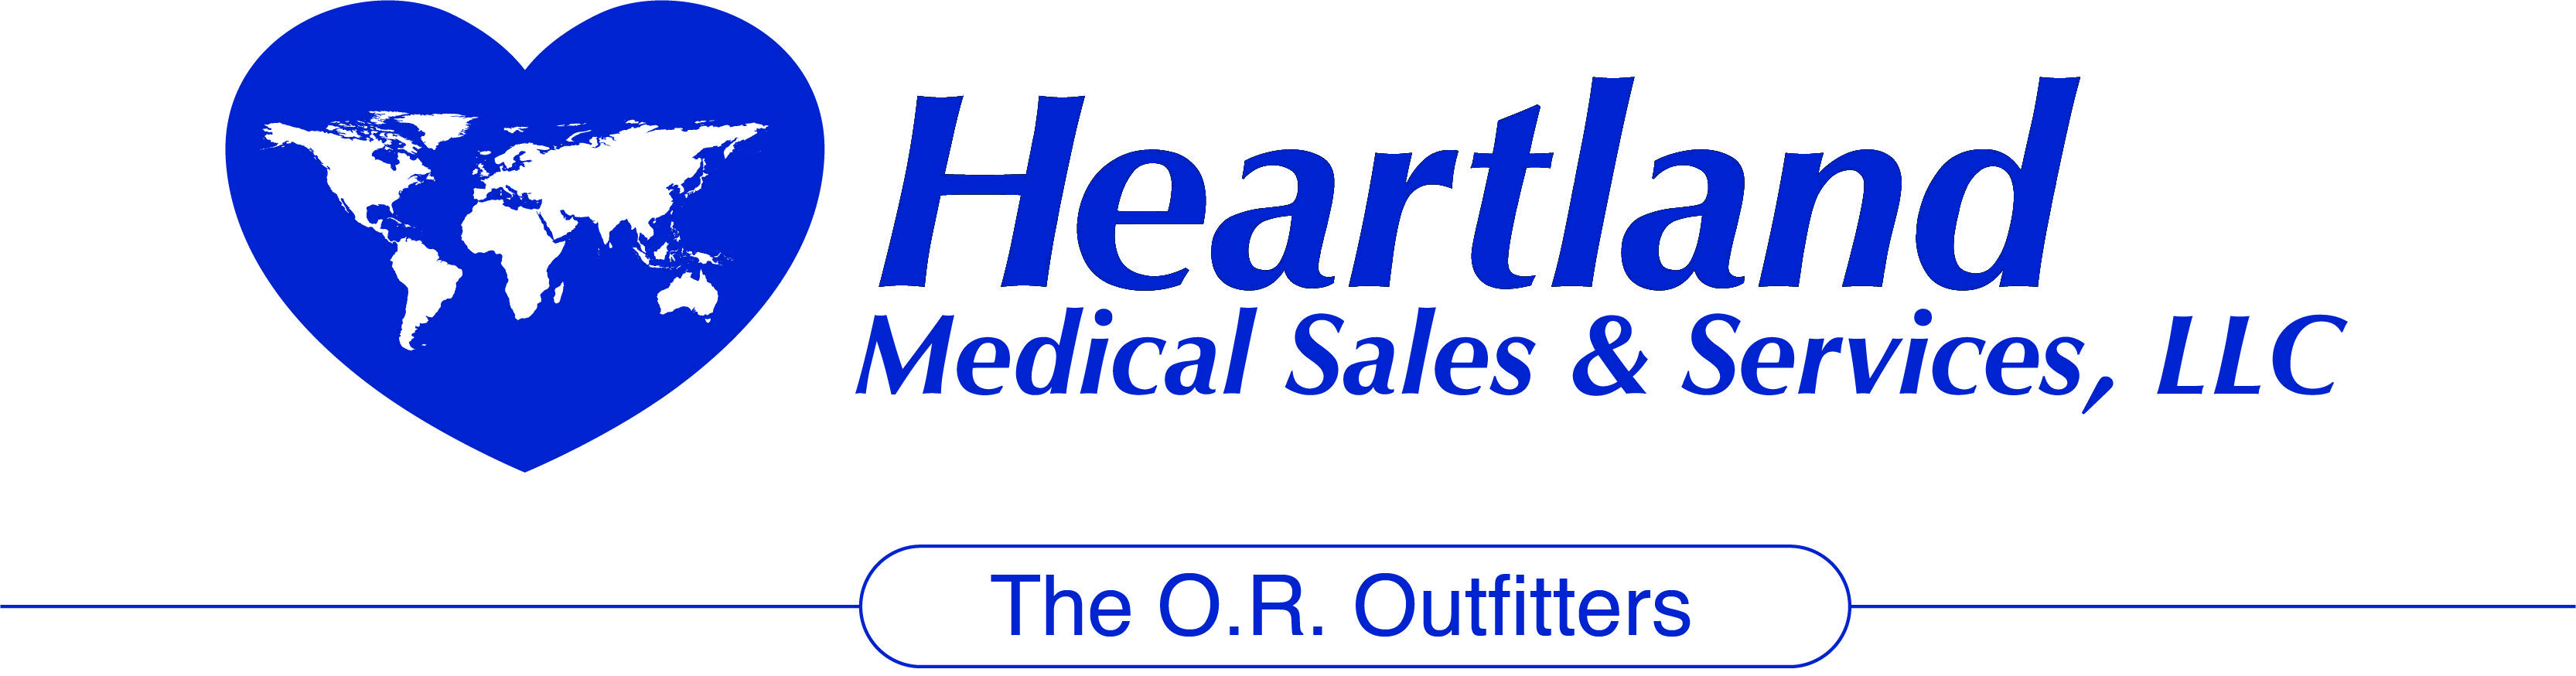 Medical Equipment Sales & Services – Variety of Medical Devices | Heartland Medical